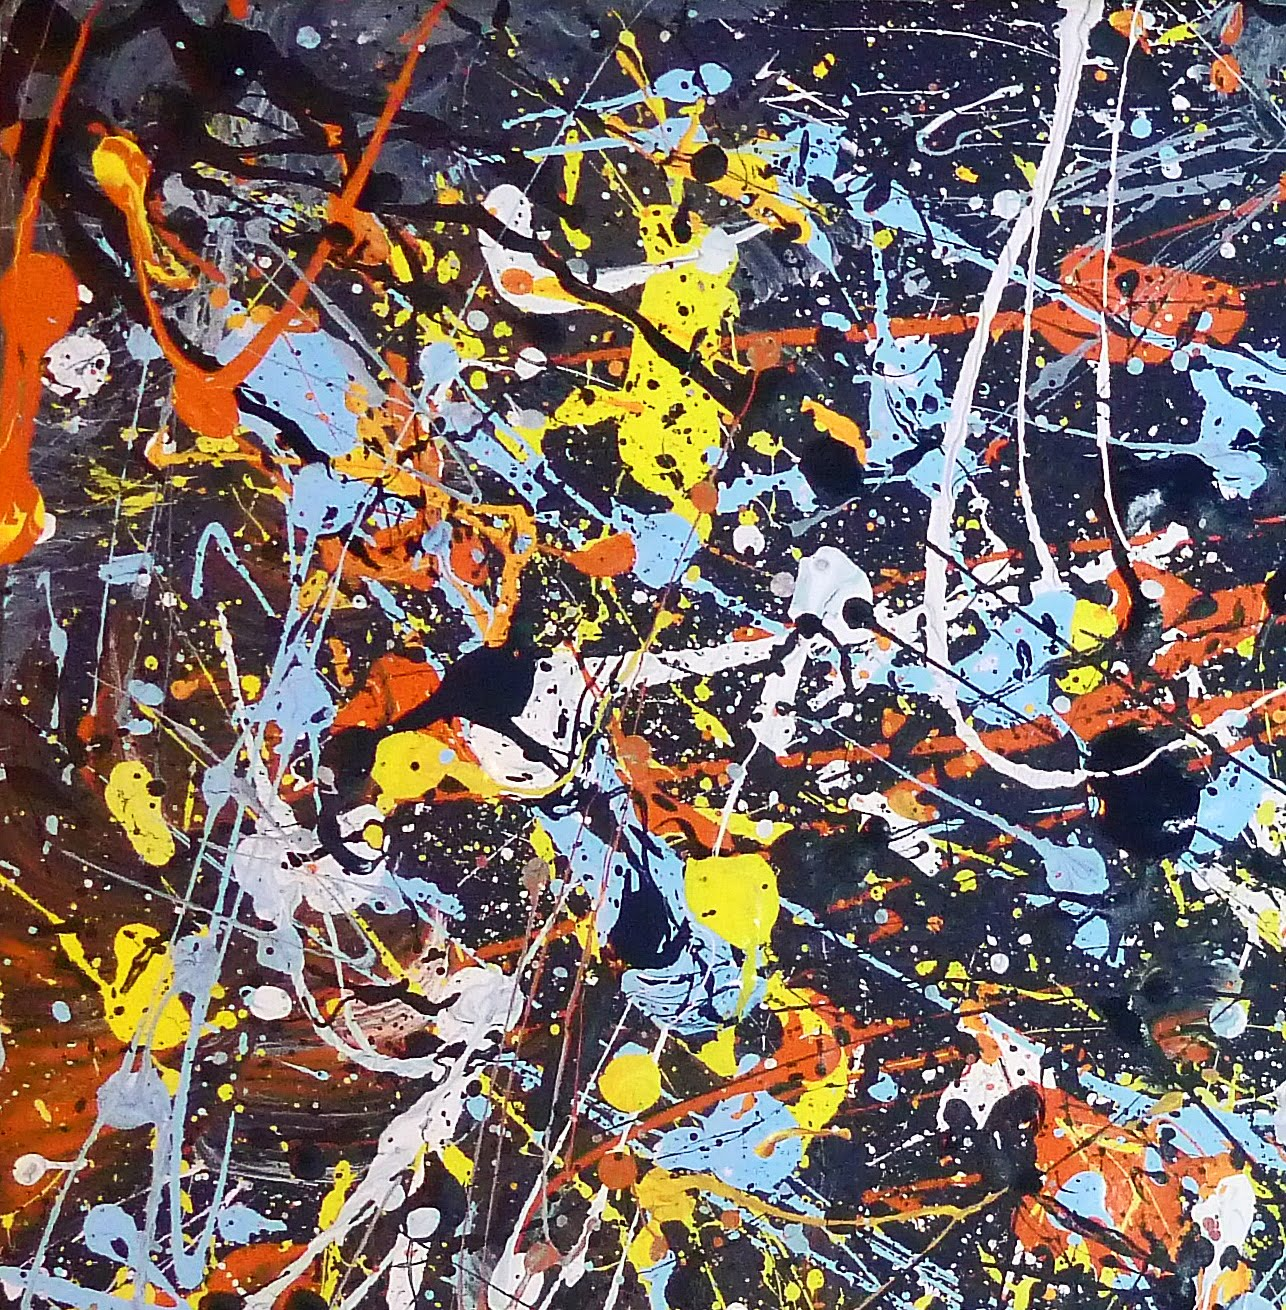 Some Of The Abstract Expressionist Painted Representational Images